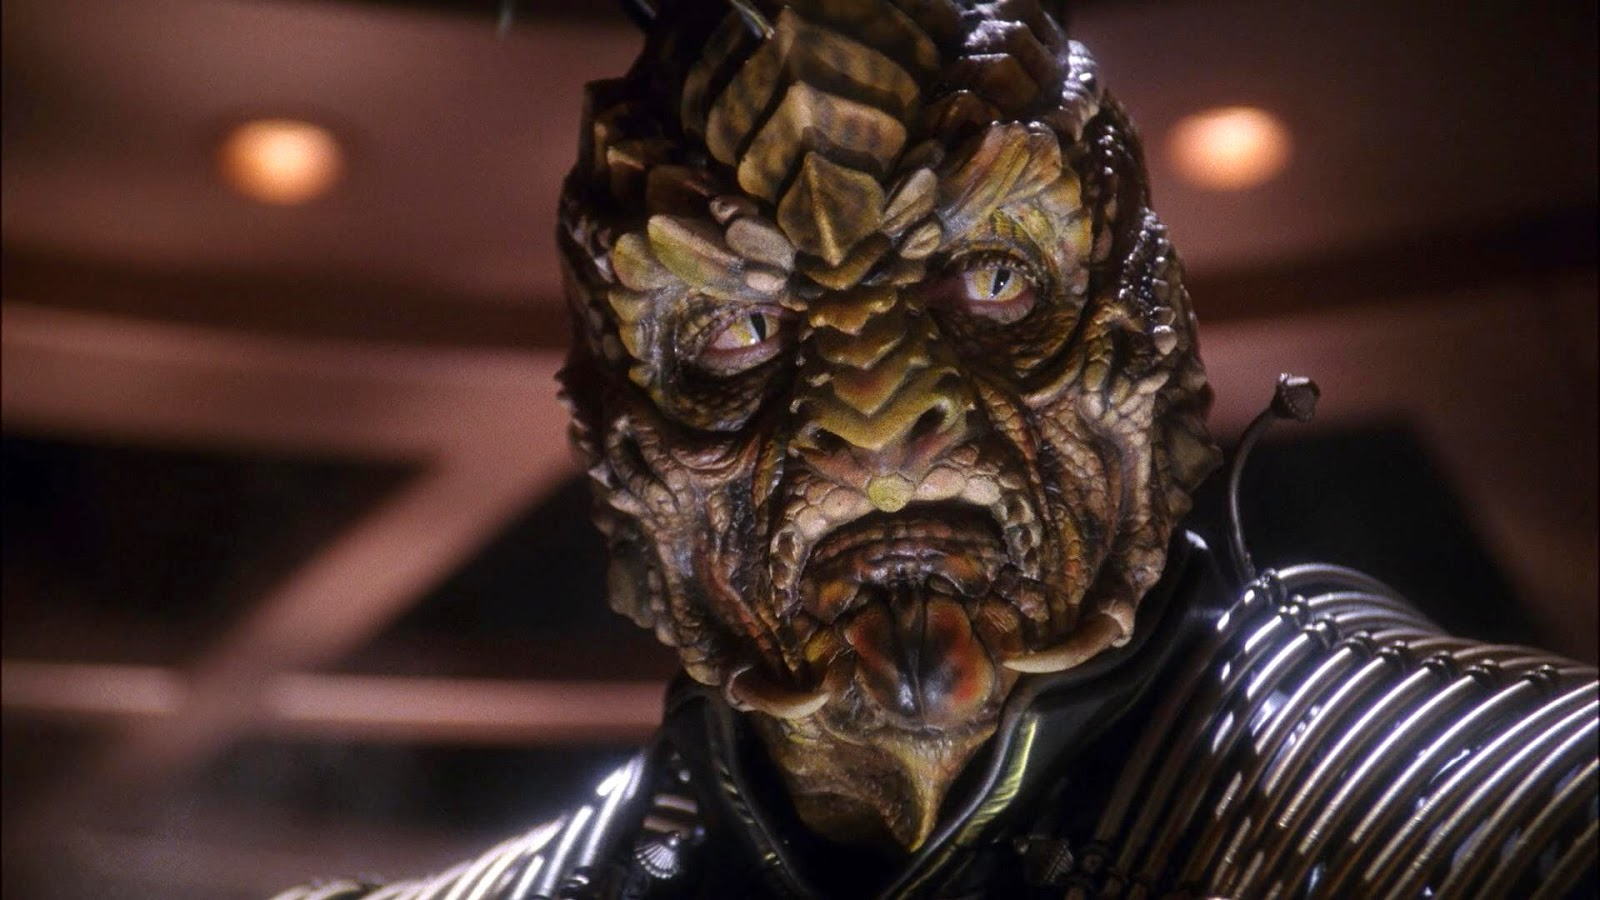 The Reptilian Aliens and the Council of the 13 'Royal' Families Reptilian-Xindi-Shape-shifting-Royal